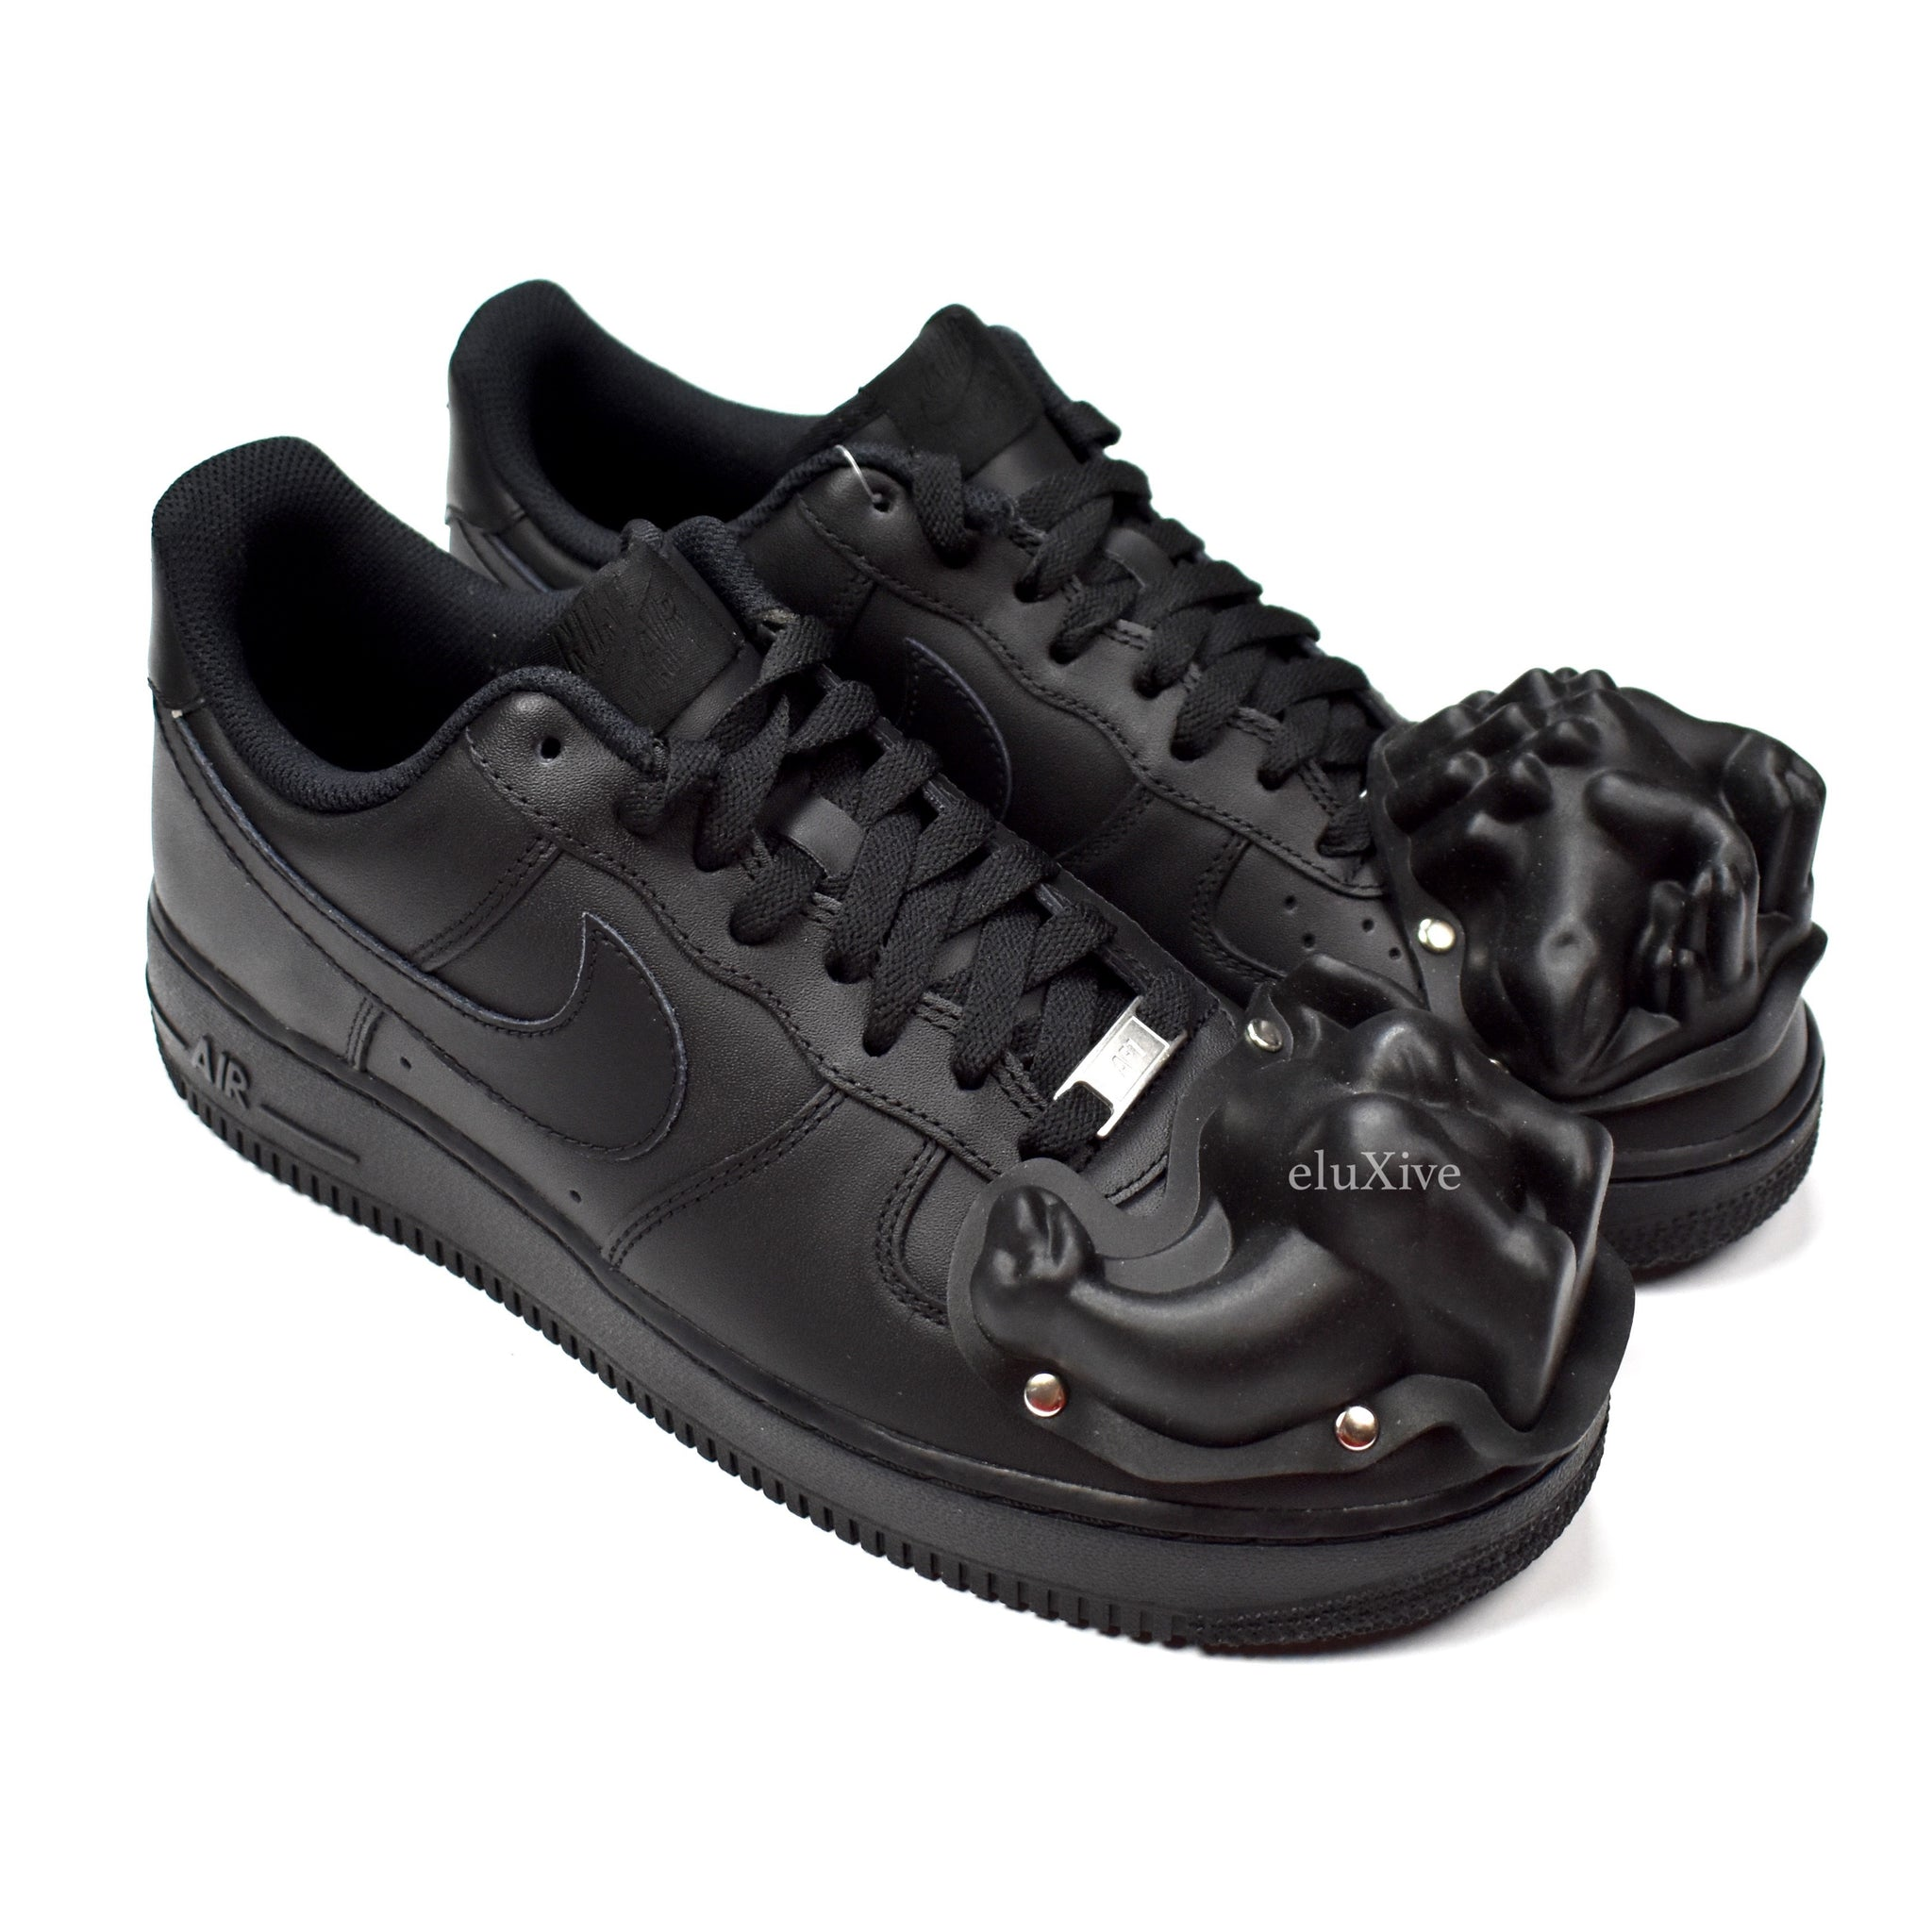 comme des garcons x nike air force 1 basso uomini dinosauro tep (black